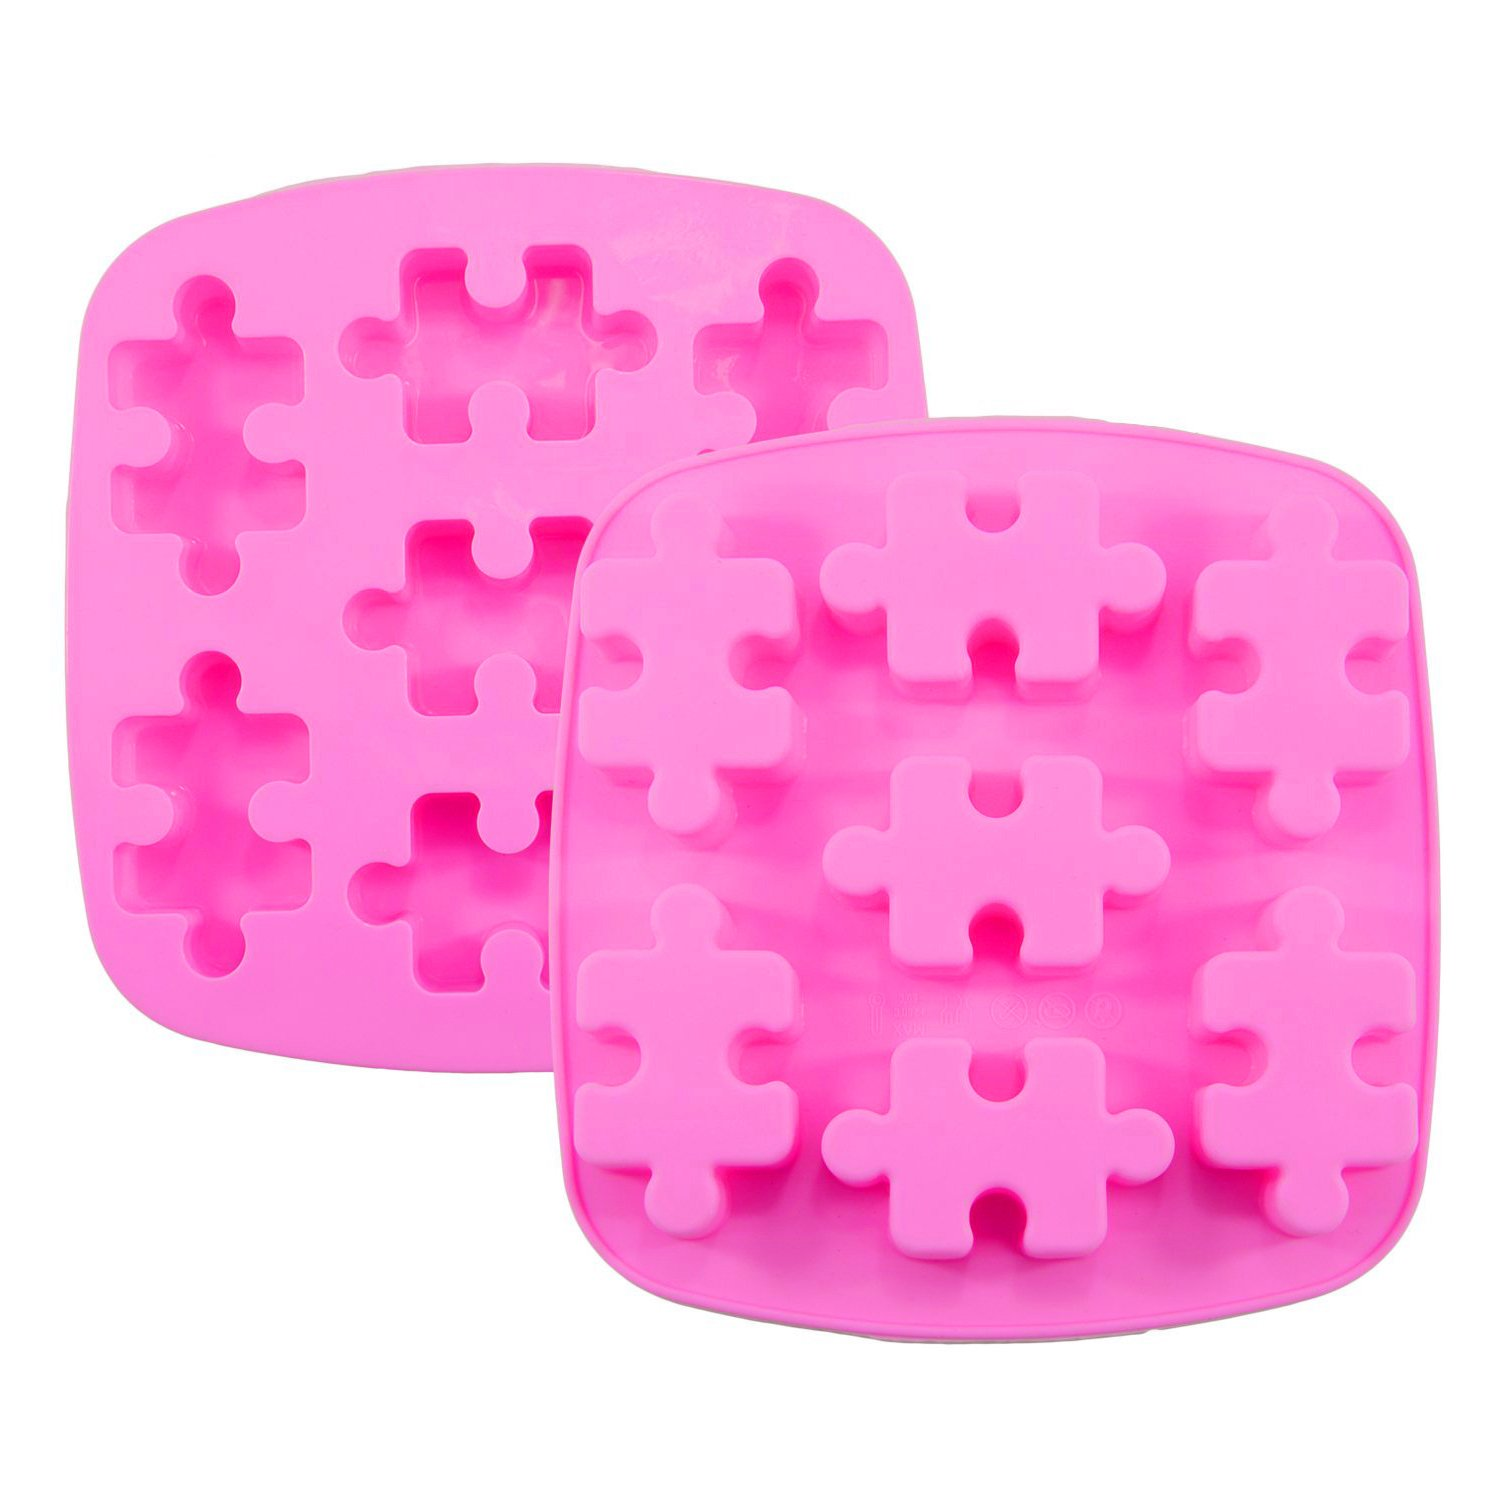 Himi Puzzle Piece Mold Puzzle Crayons Maker - Set of 2 - Non-stick Heat Resistance Silicone Puzzle Mold Perfect for Wax Samples, Chocolate, Jello shots, ...